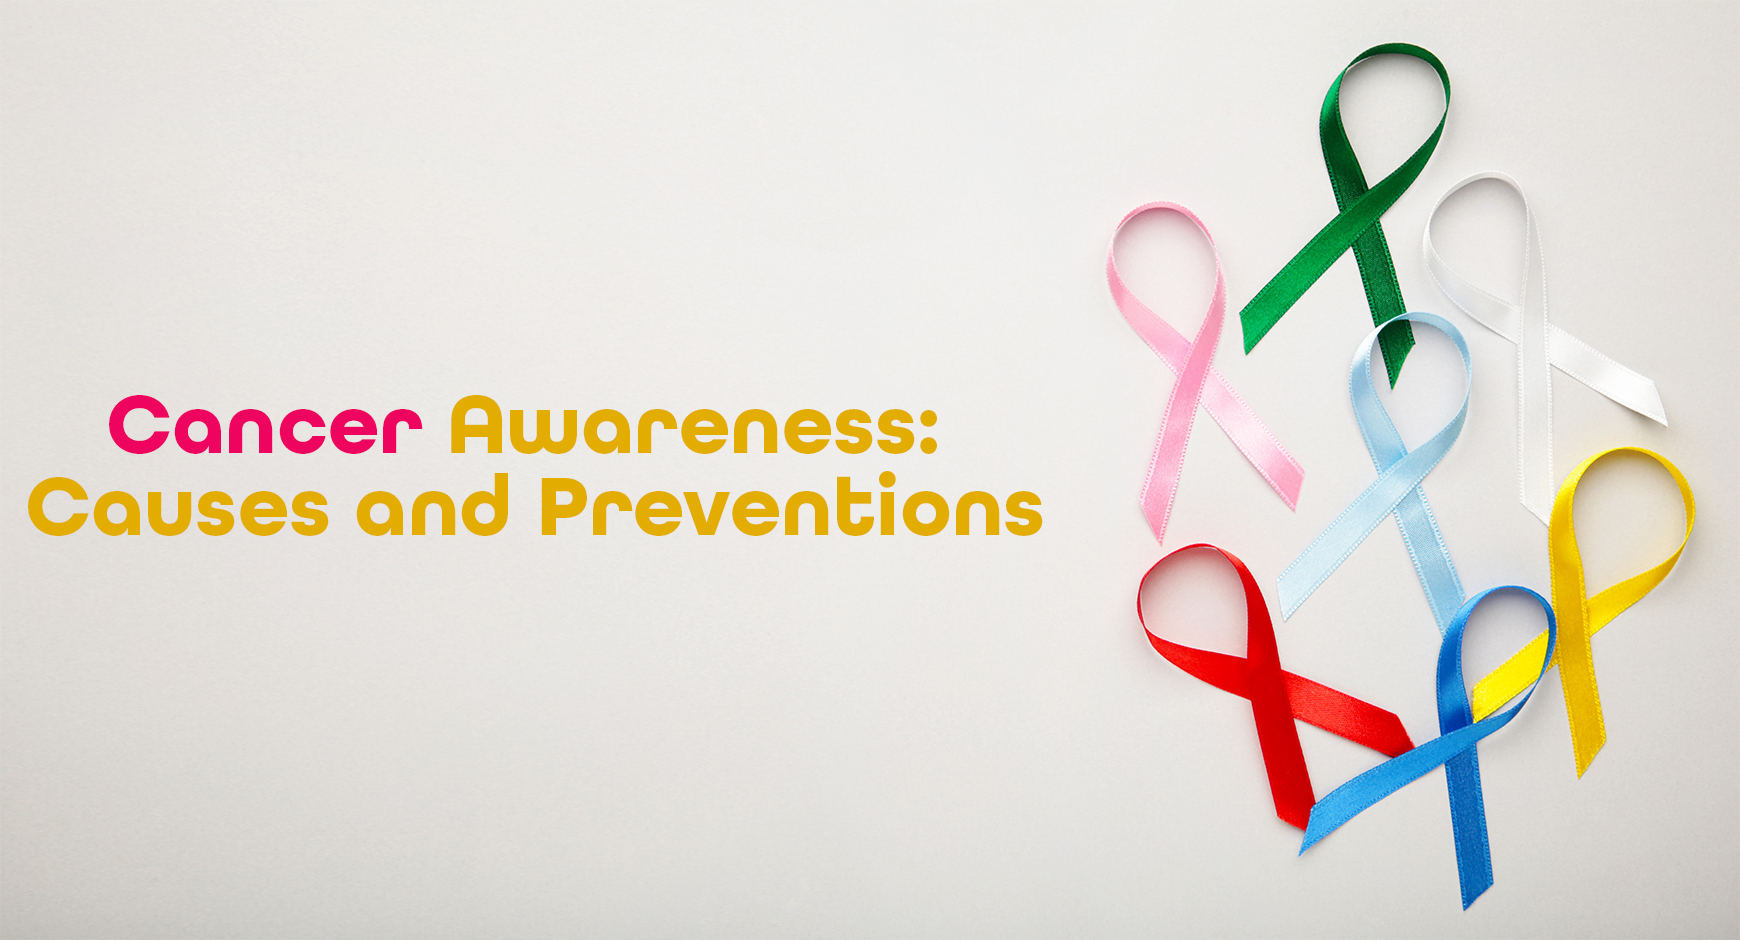 Cancer Awareness: Causes and Preventions